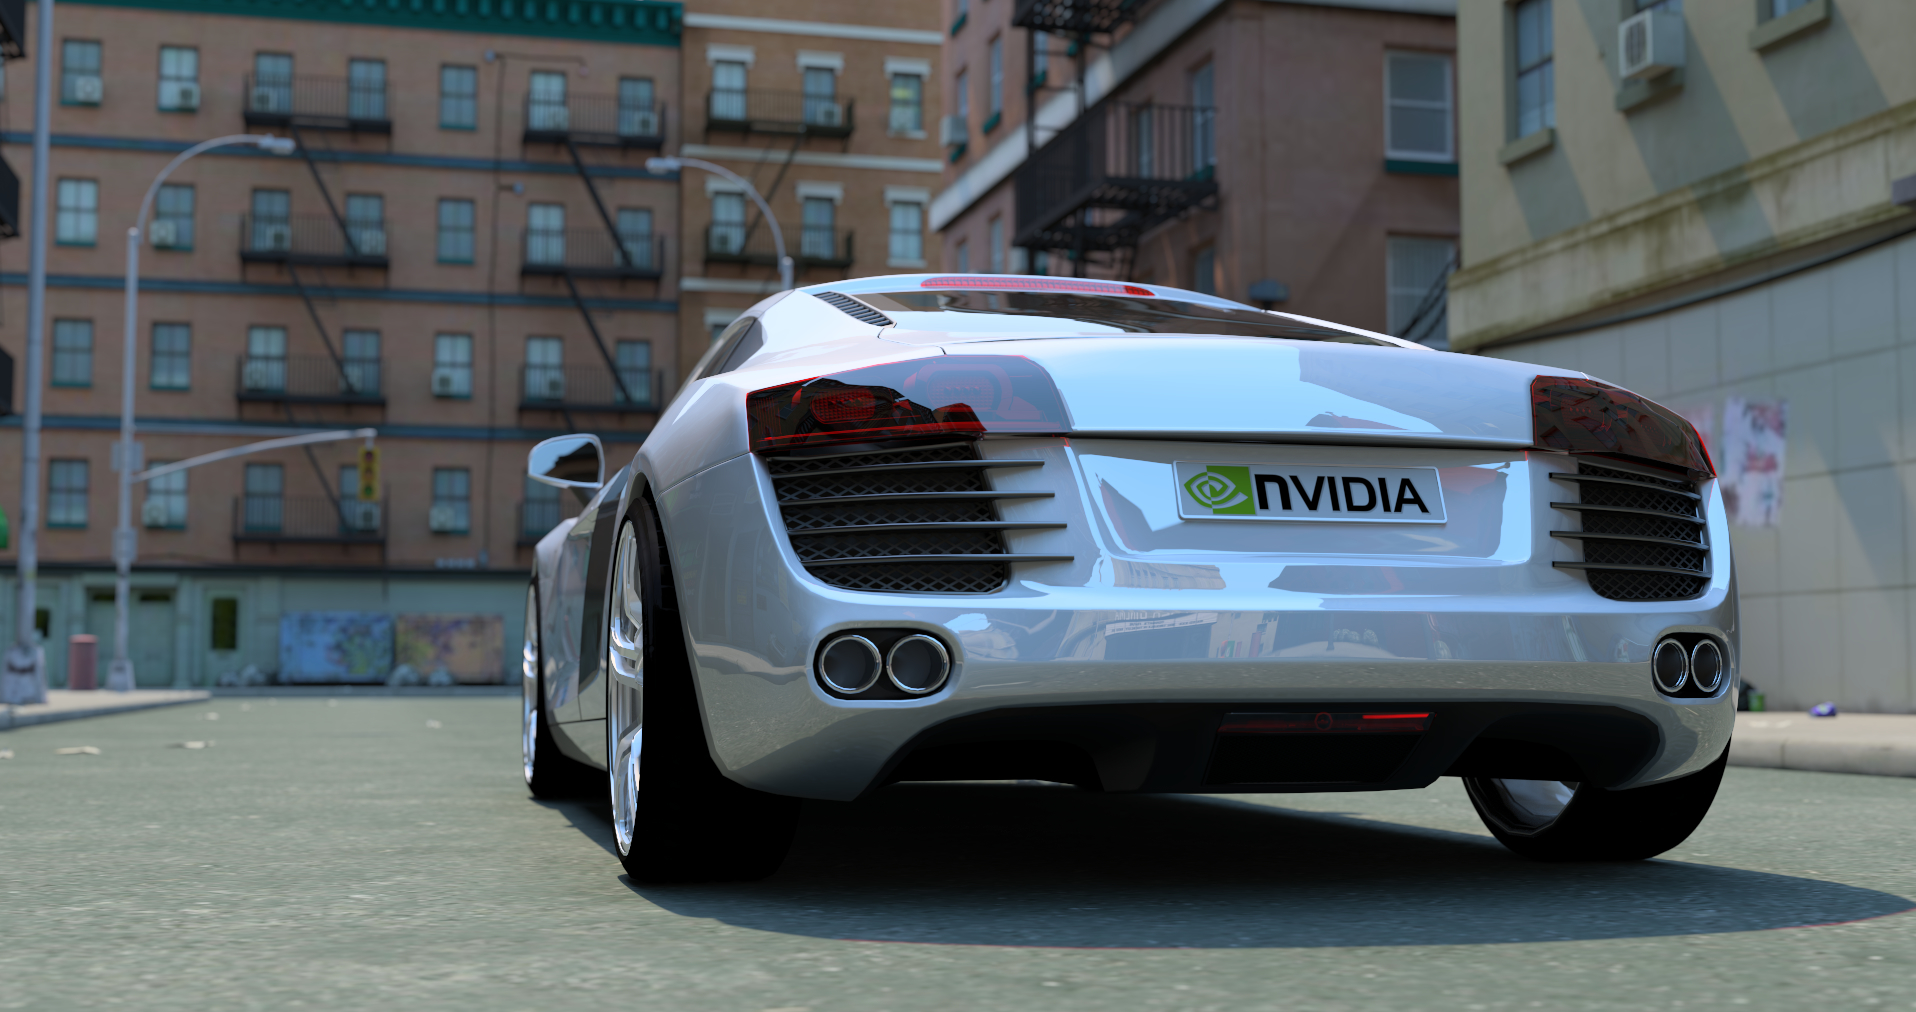 tracing computer cars nvidia HD Wallpaper